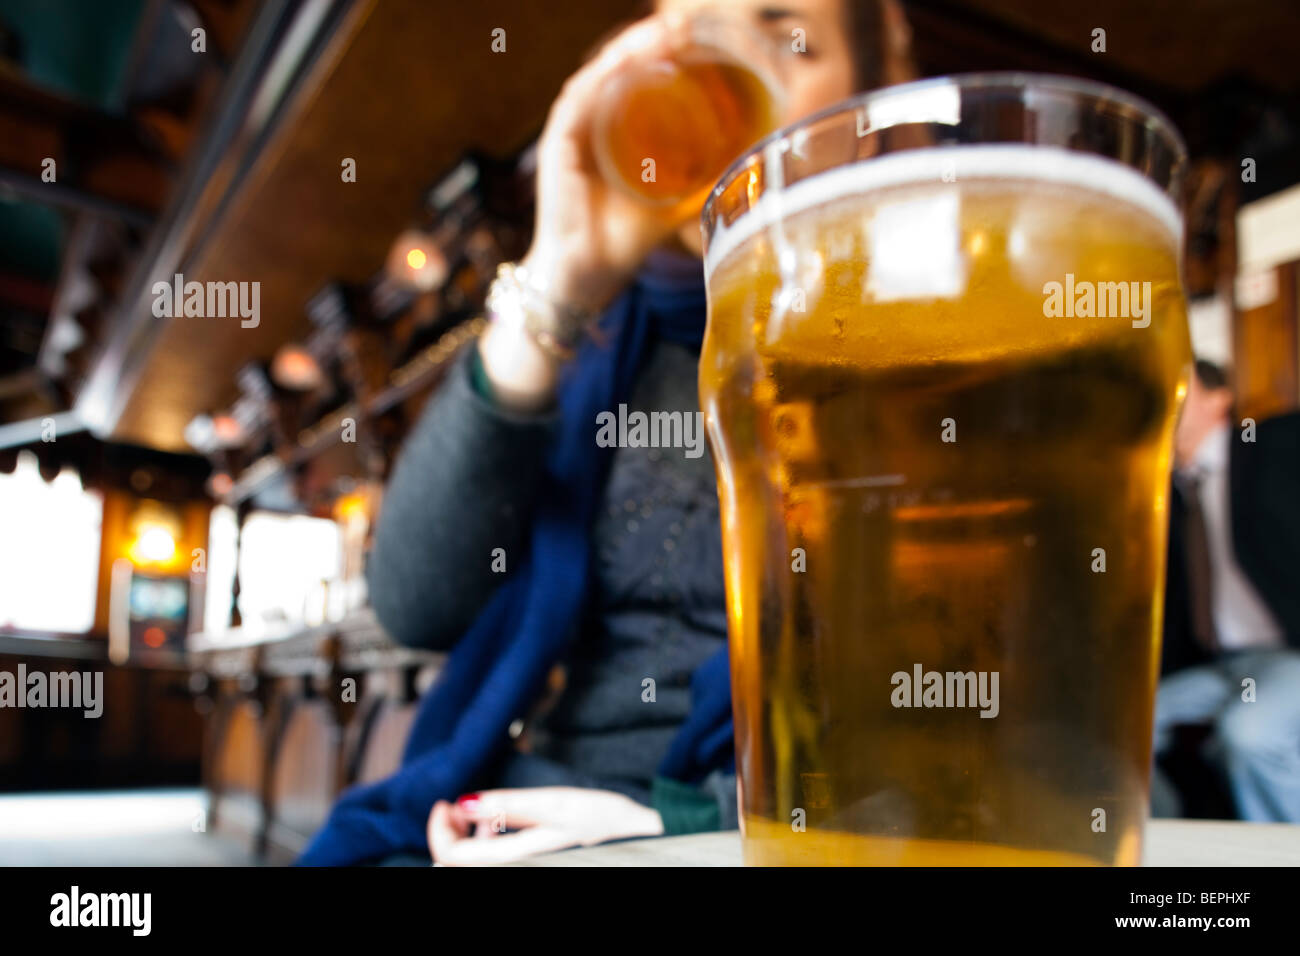 Pint of beer in a pub, London, England, United Kingdom - Stock Image